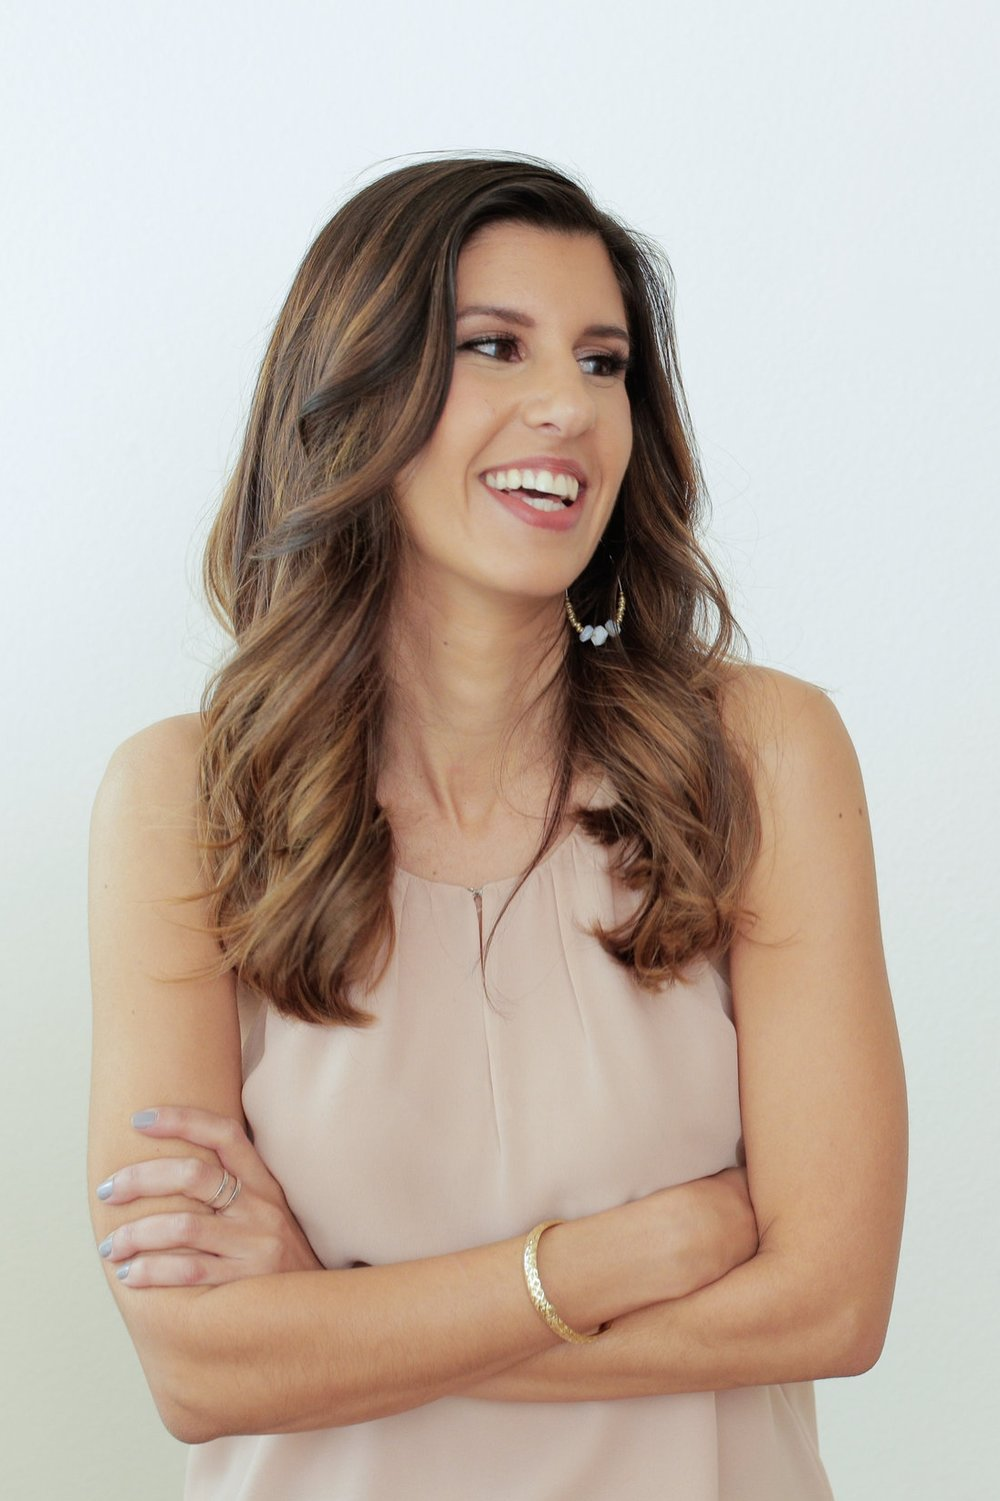 Arielle Zadok, Executive Coach for Women in Film